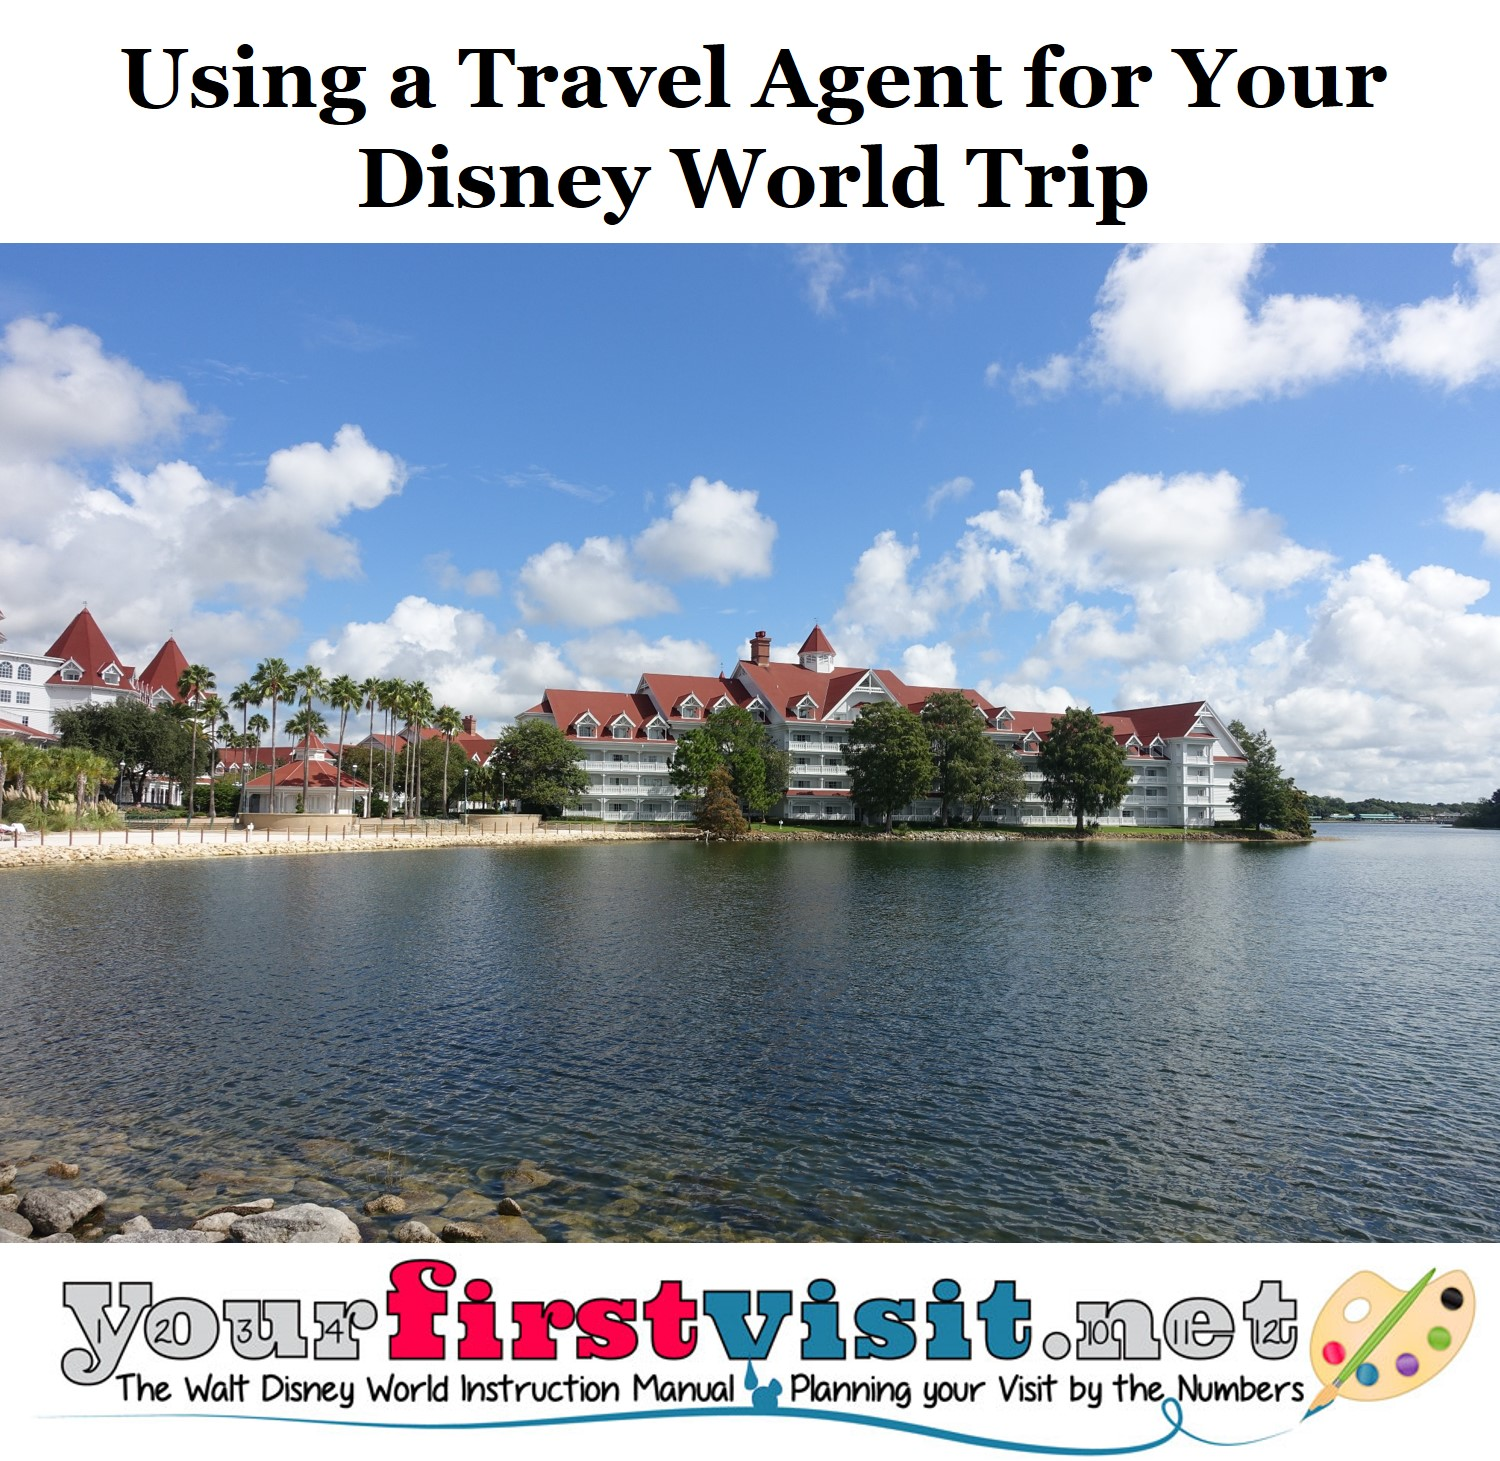 using-a-travel-agent-for-your-disney-world-trip